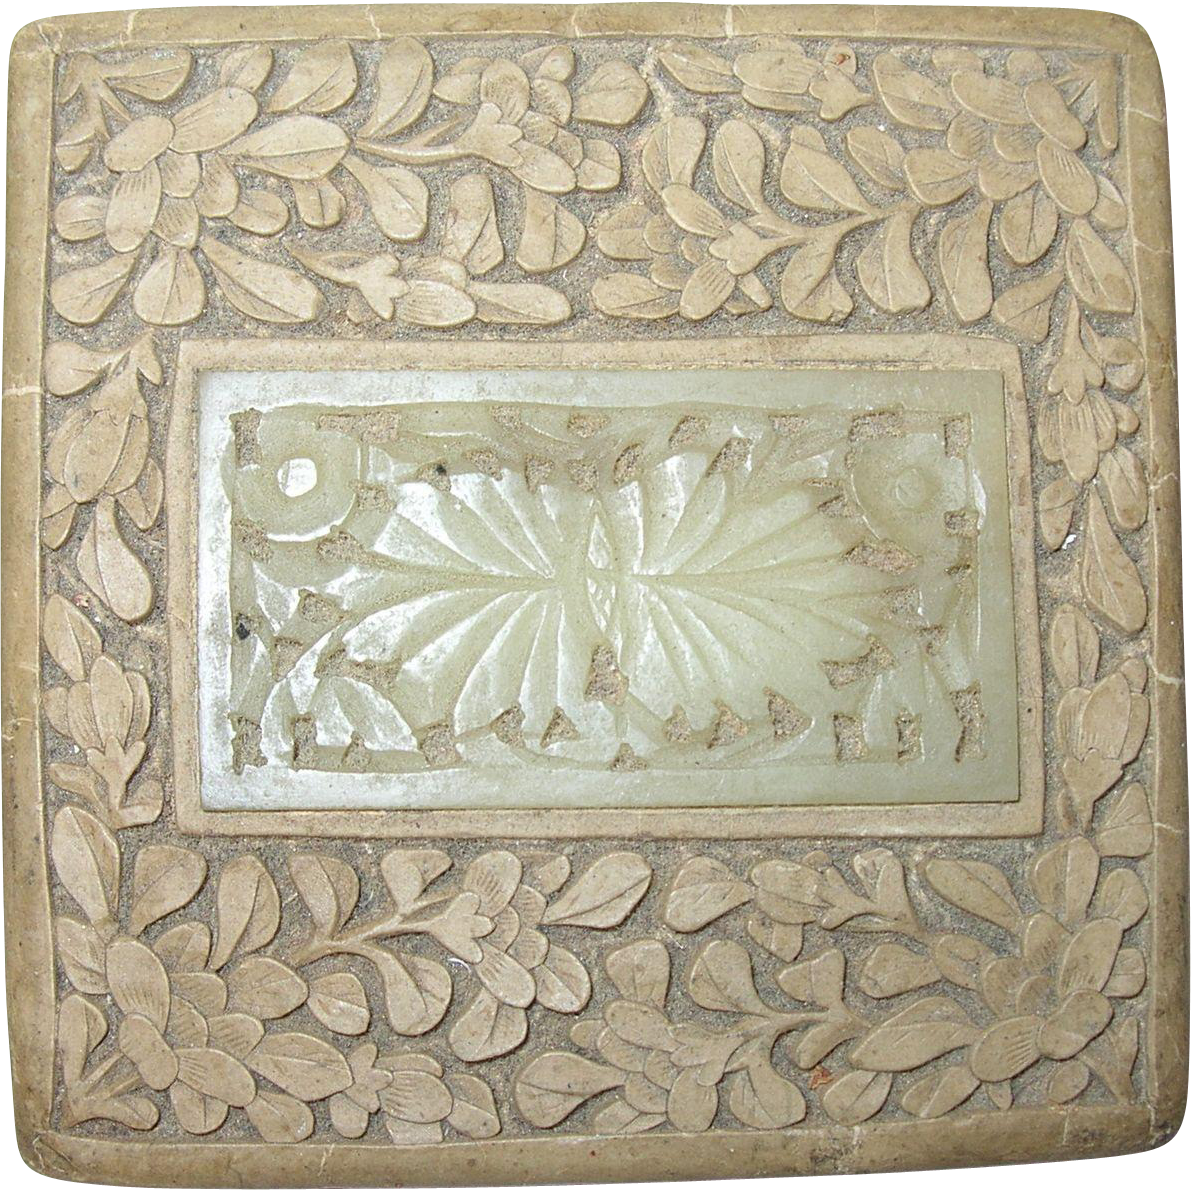 Decorative Box Lid : Vintage decorative box china jade lid from robbiaantique